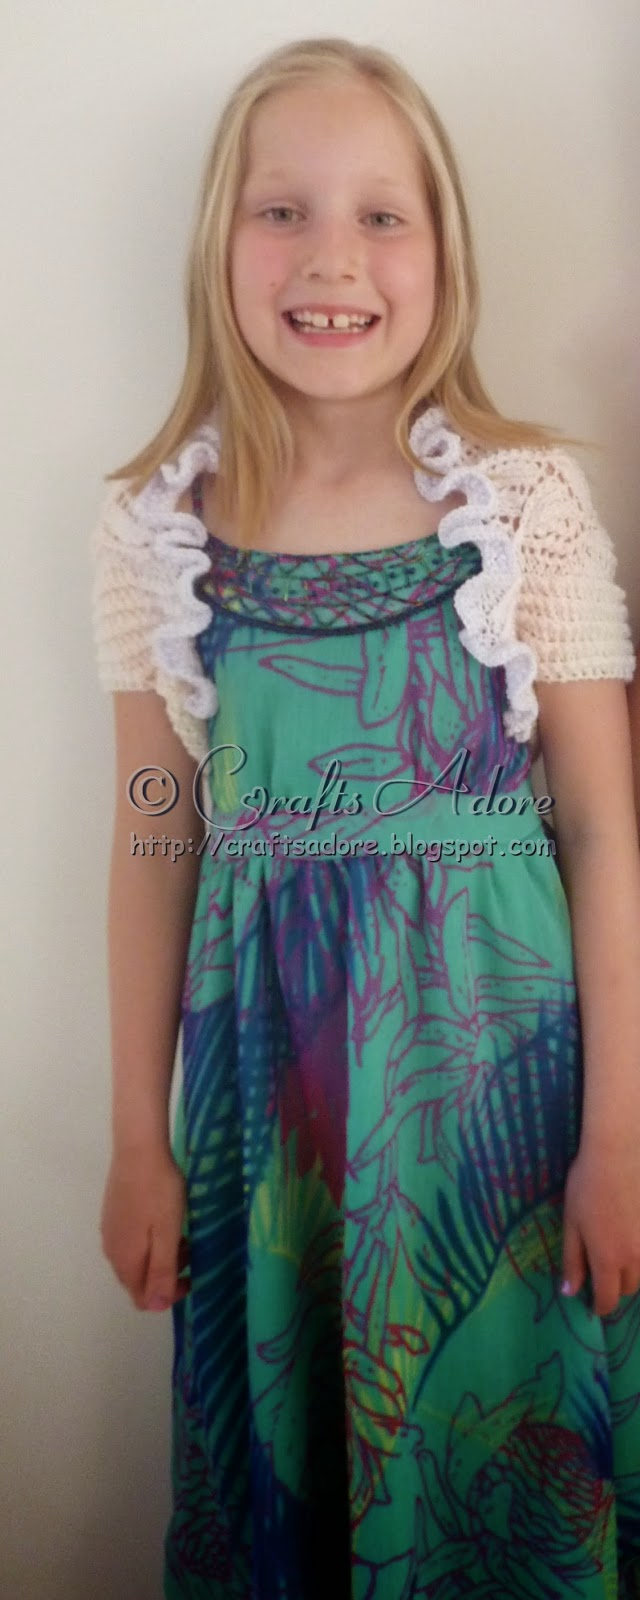 CraftsAdore: Knitted Girl Lacy Bellflowers Shrug Free Knitting Pattern